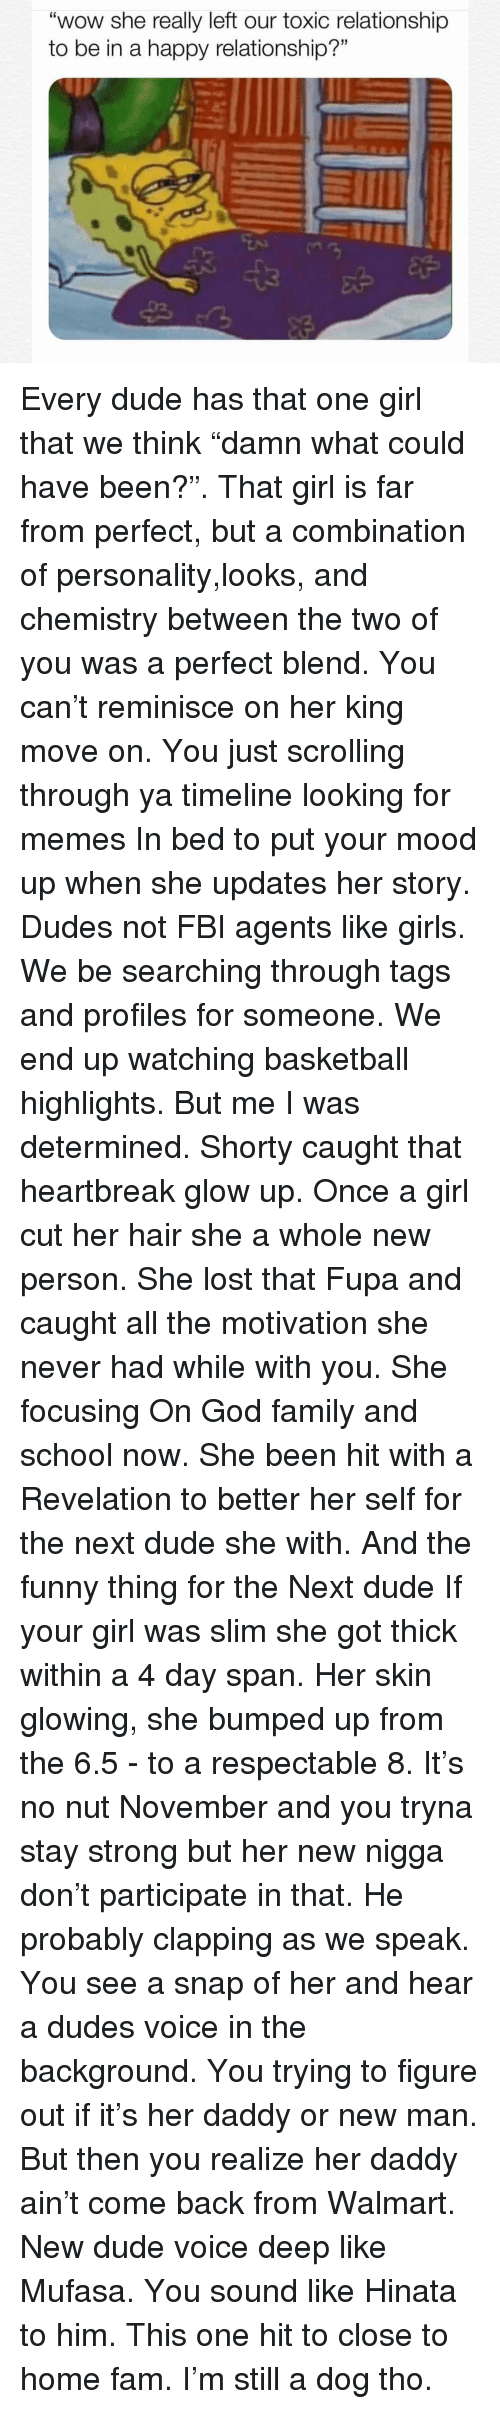 "Basketball, Dude, and Fam: ""wow she really left our toxic relationship  to be in a happy relationship?"" Every dude has that one girl that we think ""damn what could have been?"". That girl is far from perfect, but a combination of personality,looks, and chemistry between the two of you was a perfect blend. You can't reminisce on her king move on. You just scrolling through ya timeline looking for memes In bed to put your mood up when she updates her story. Dudes not FBI agents like girls. We be searching through tags and profiles for someone. We end up watching basketball highlights. But me I was determined. Shorty caught that heartbreak glow up. Once a girl cut her hair she a whole new person. She lost that Fupa and caught all the motivation she never had while with you. She focusing On God family and school now. She been hit with a Revelation to better her self for the next dude she with. And the funny thing for the Next dude If your girl was slim she got thick within a 4 day span. Her skin glowing, she bumped up from the 6.5 - to a respectable 8. It's no nut November and you tryna stay strong but her new nigga don't participate in that. He probably clapping as we speak. You see a snap of her and hear a dudes voice in the background. You trying to figure out if it's her daddy or new man. But then you realize her daddy ain't come back from Walmart. New dude voice deep like Mufasa. You sound like Hinata to him. This one hit to close to home fam. I'm still a dog tho."